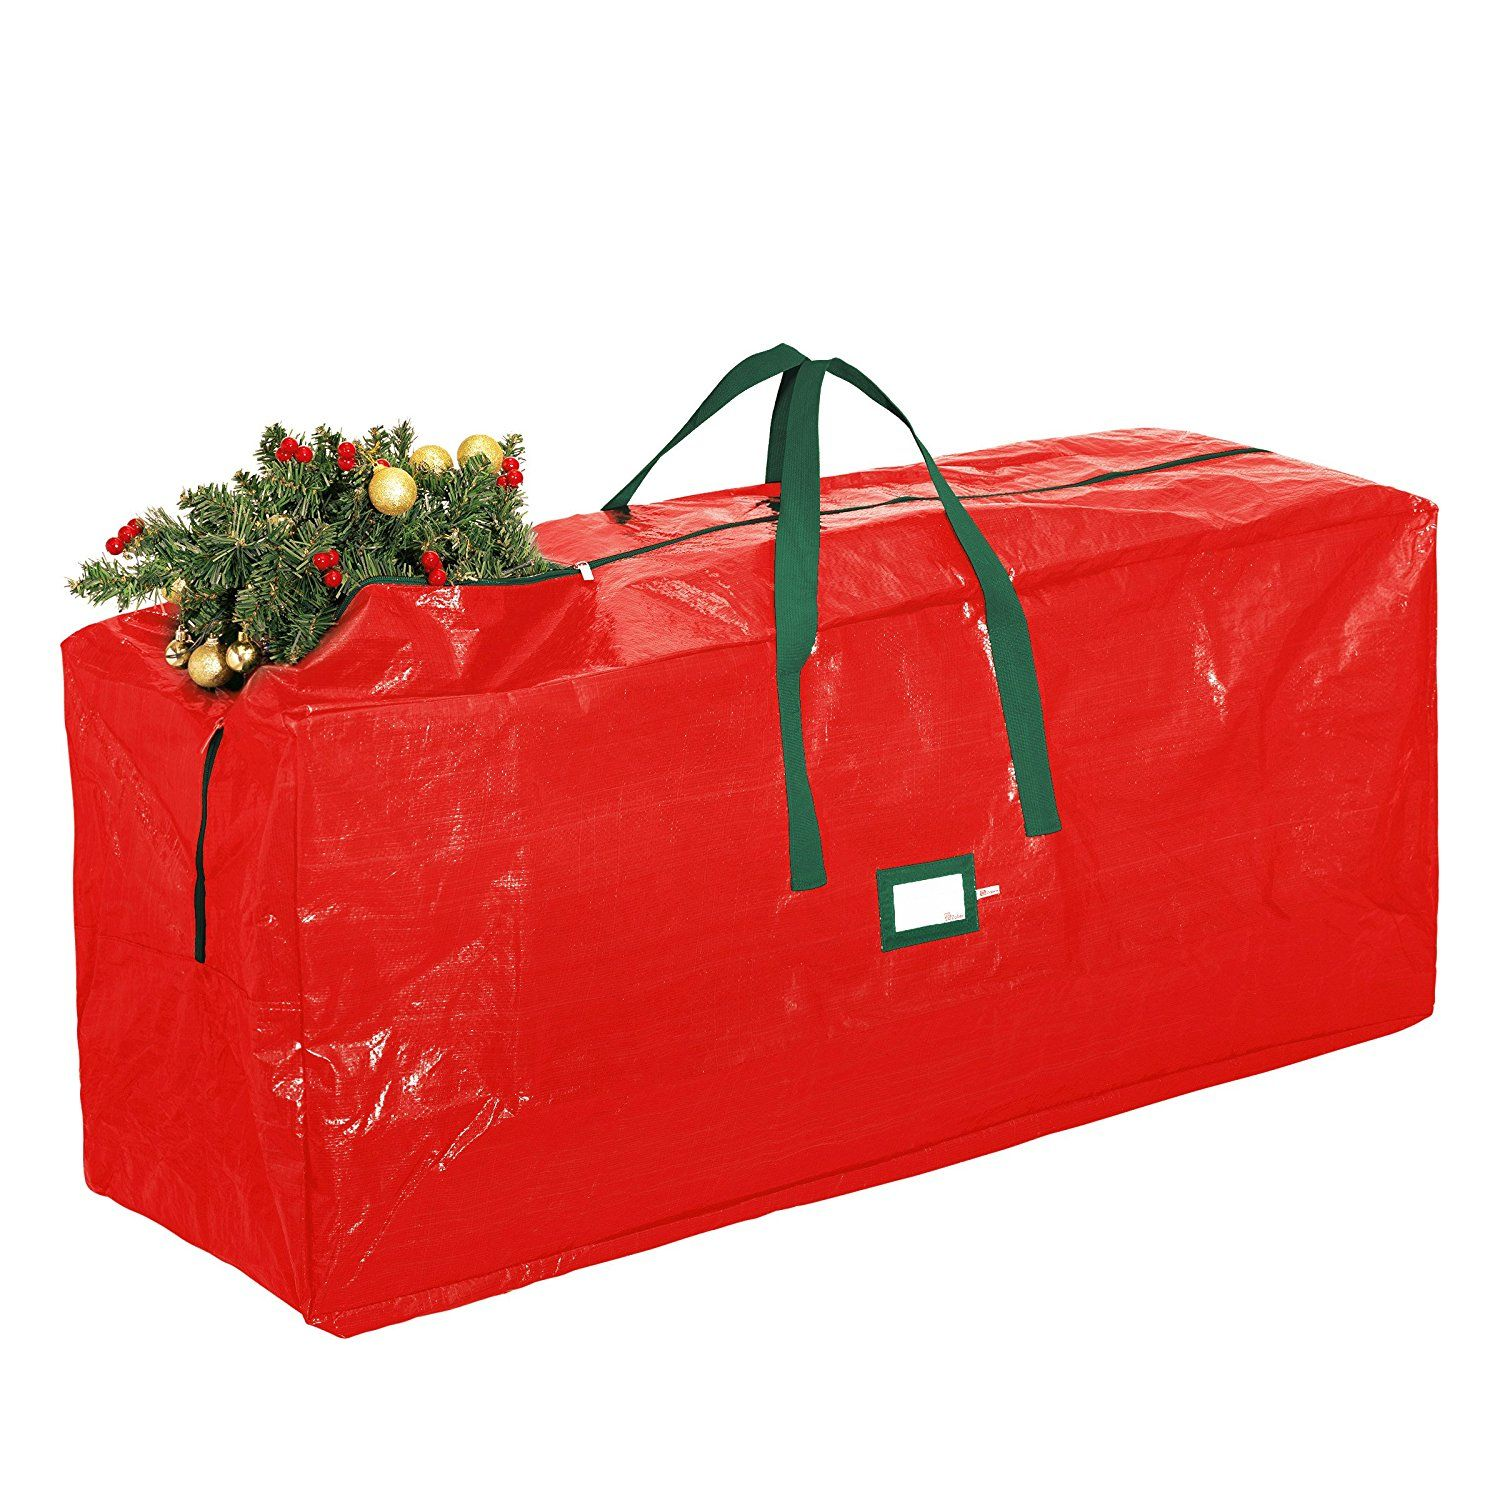 Extra Large Christmas Tree Bag Only 8 99 Become A Coupon Queen Christmas Tree Storage Christmas Tree Storage Bag Tree Storage Bag